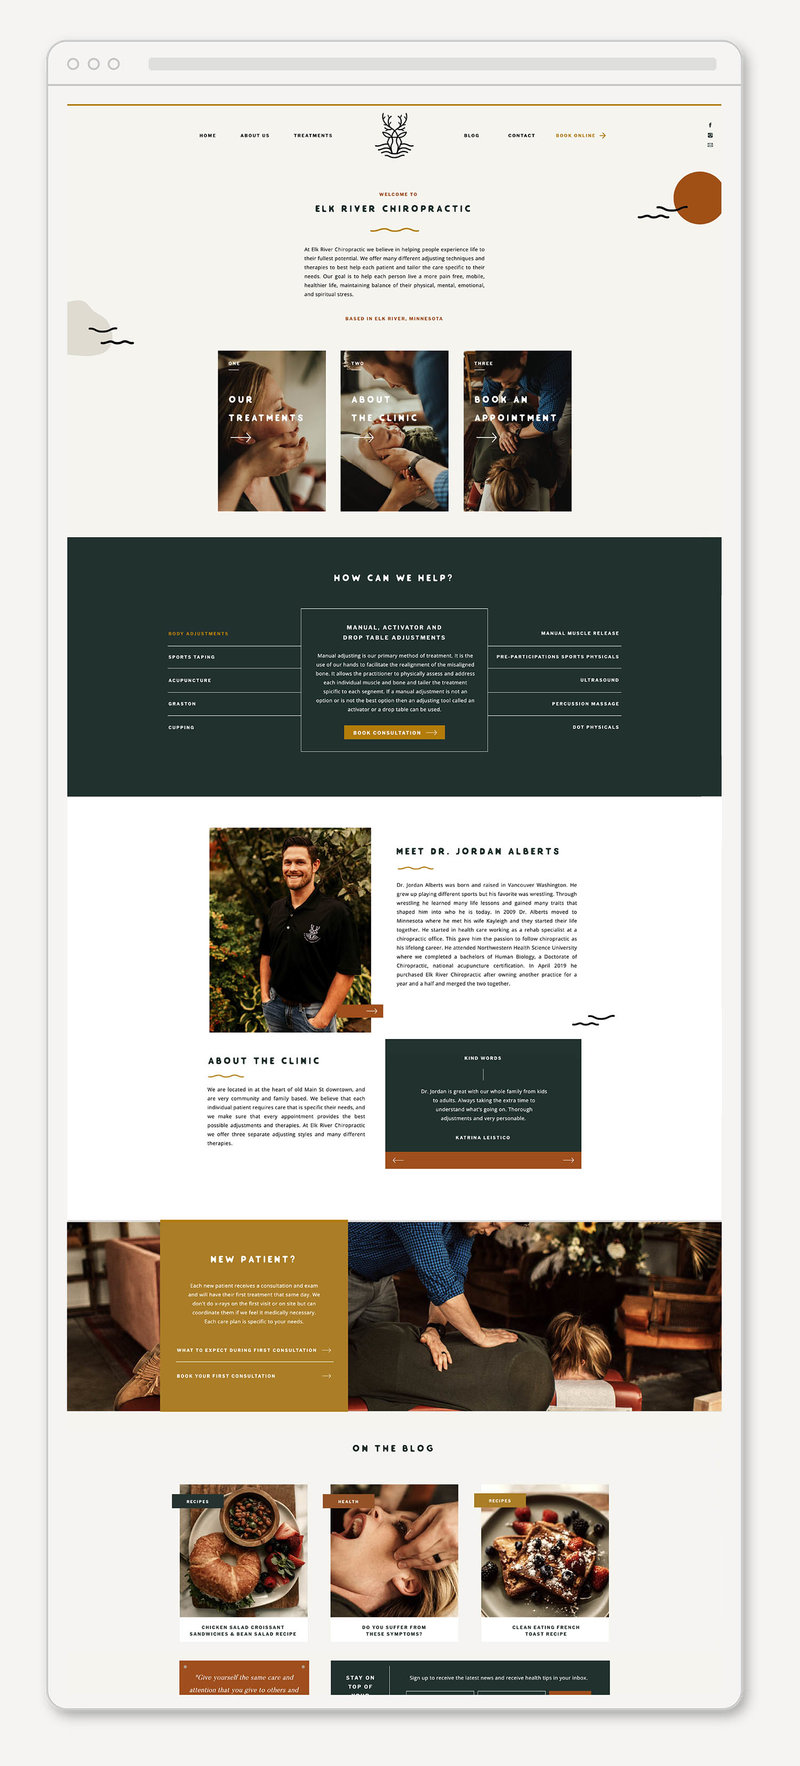 Lindsay Hotmire Website Homepage Mockup